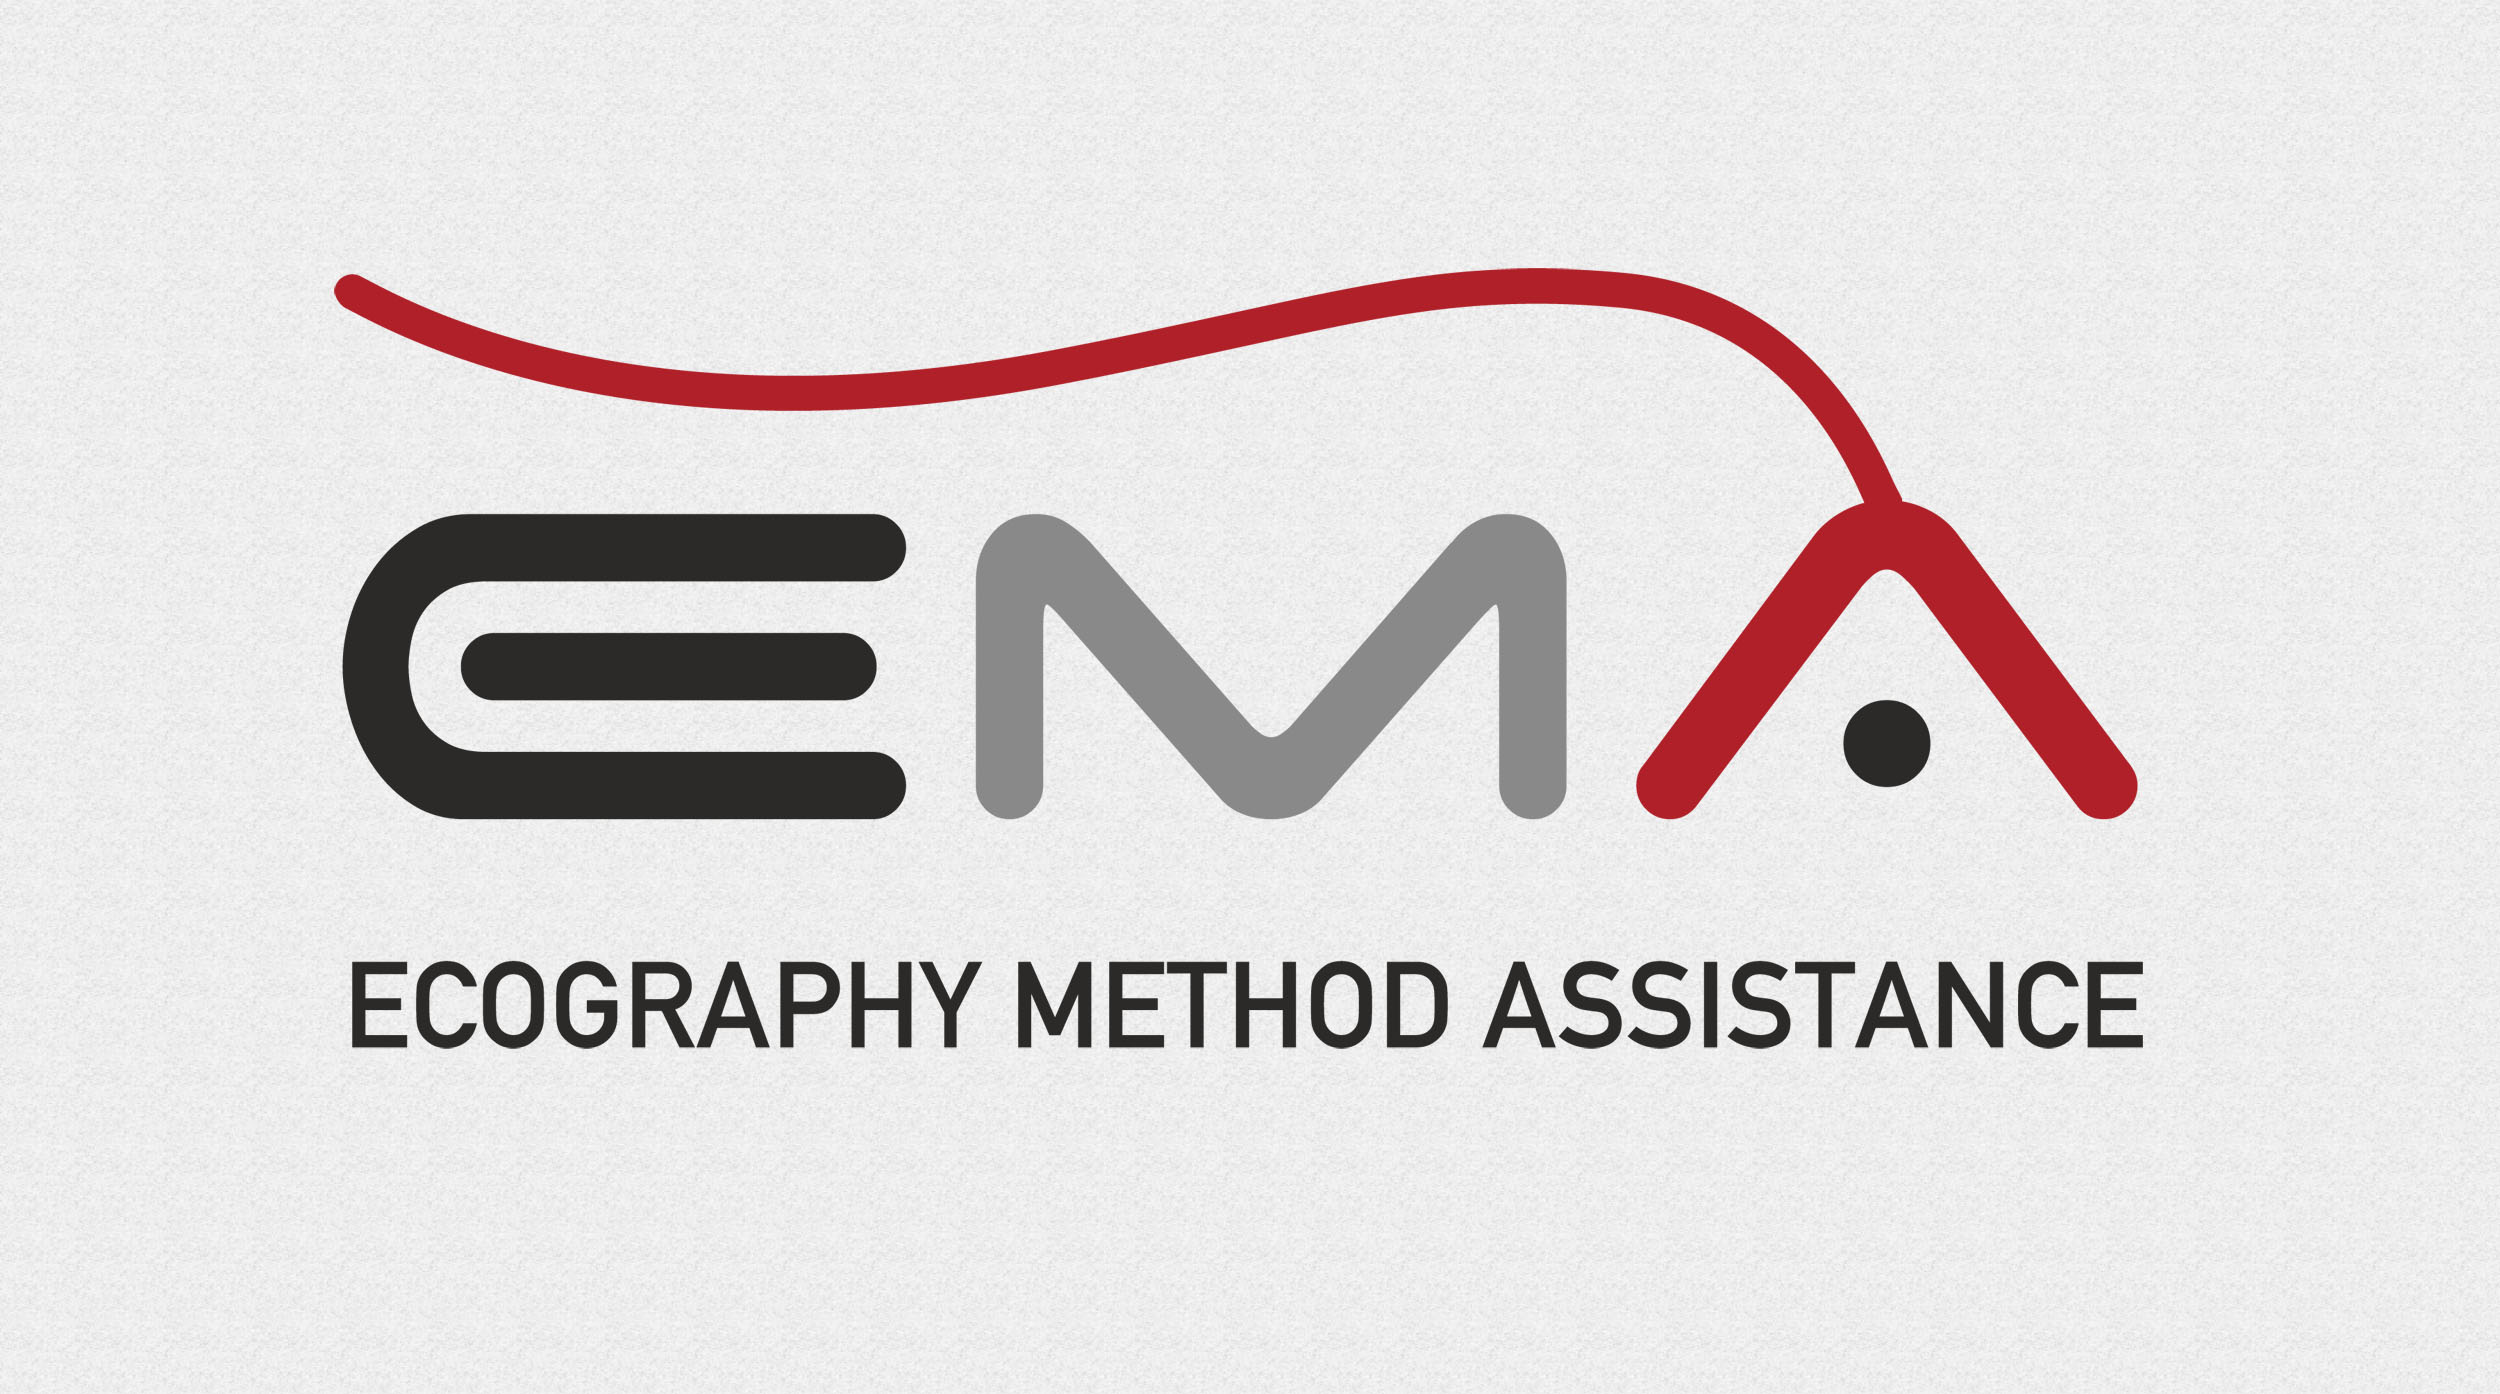 ema ecography method assistance